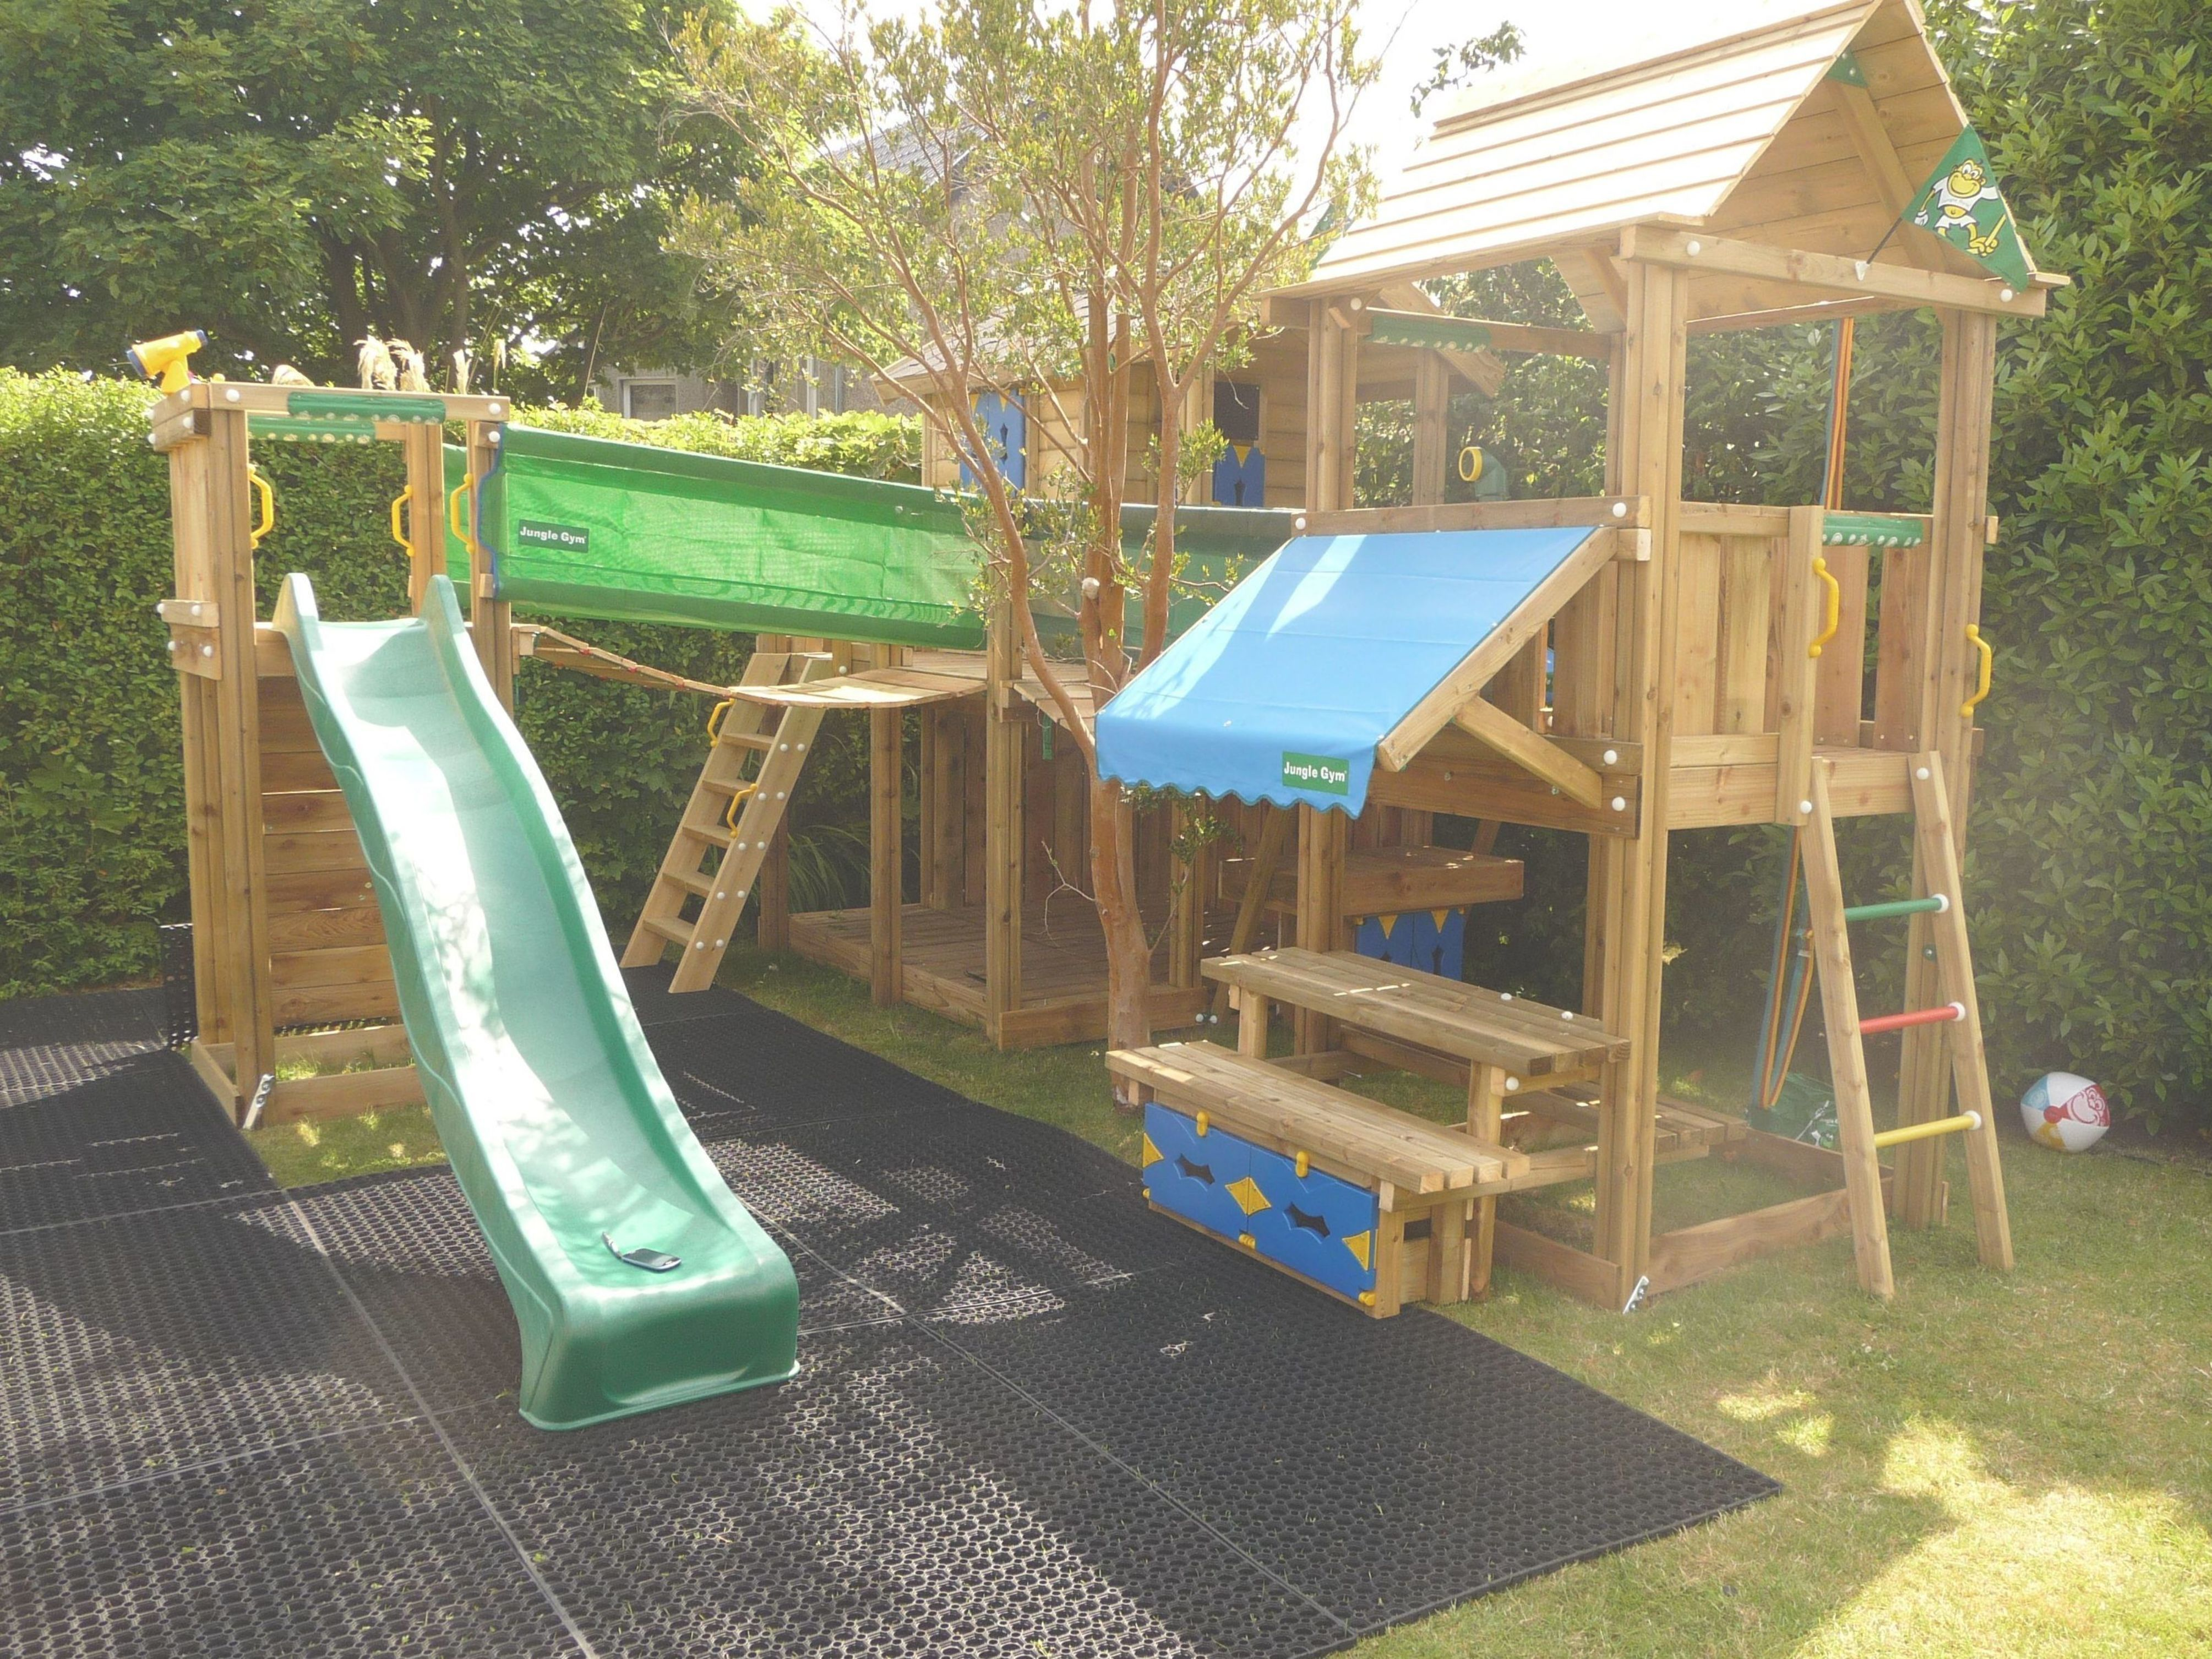 Impressive Backyard Jungle Gym Ideas Jungle gyms permit children to interact an  Impressive Backyard Jungle Gym Ideas Jungle gyms permit children to interact an